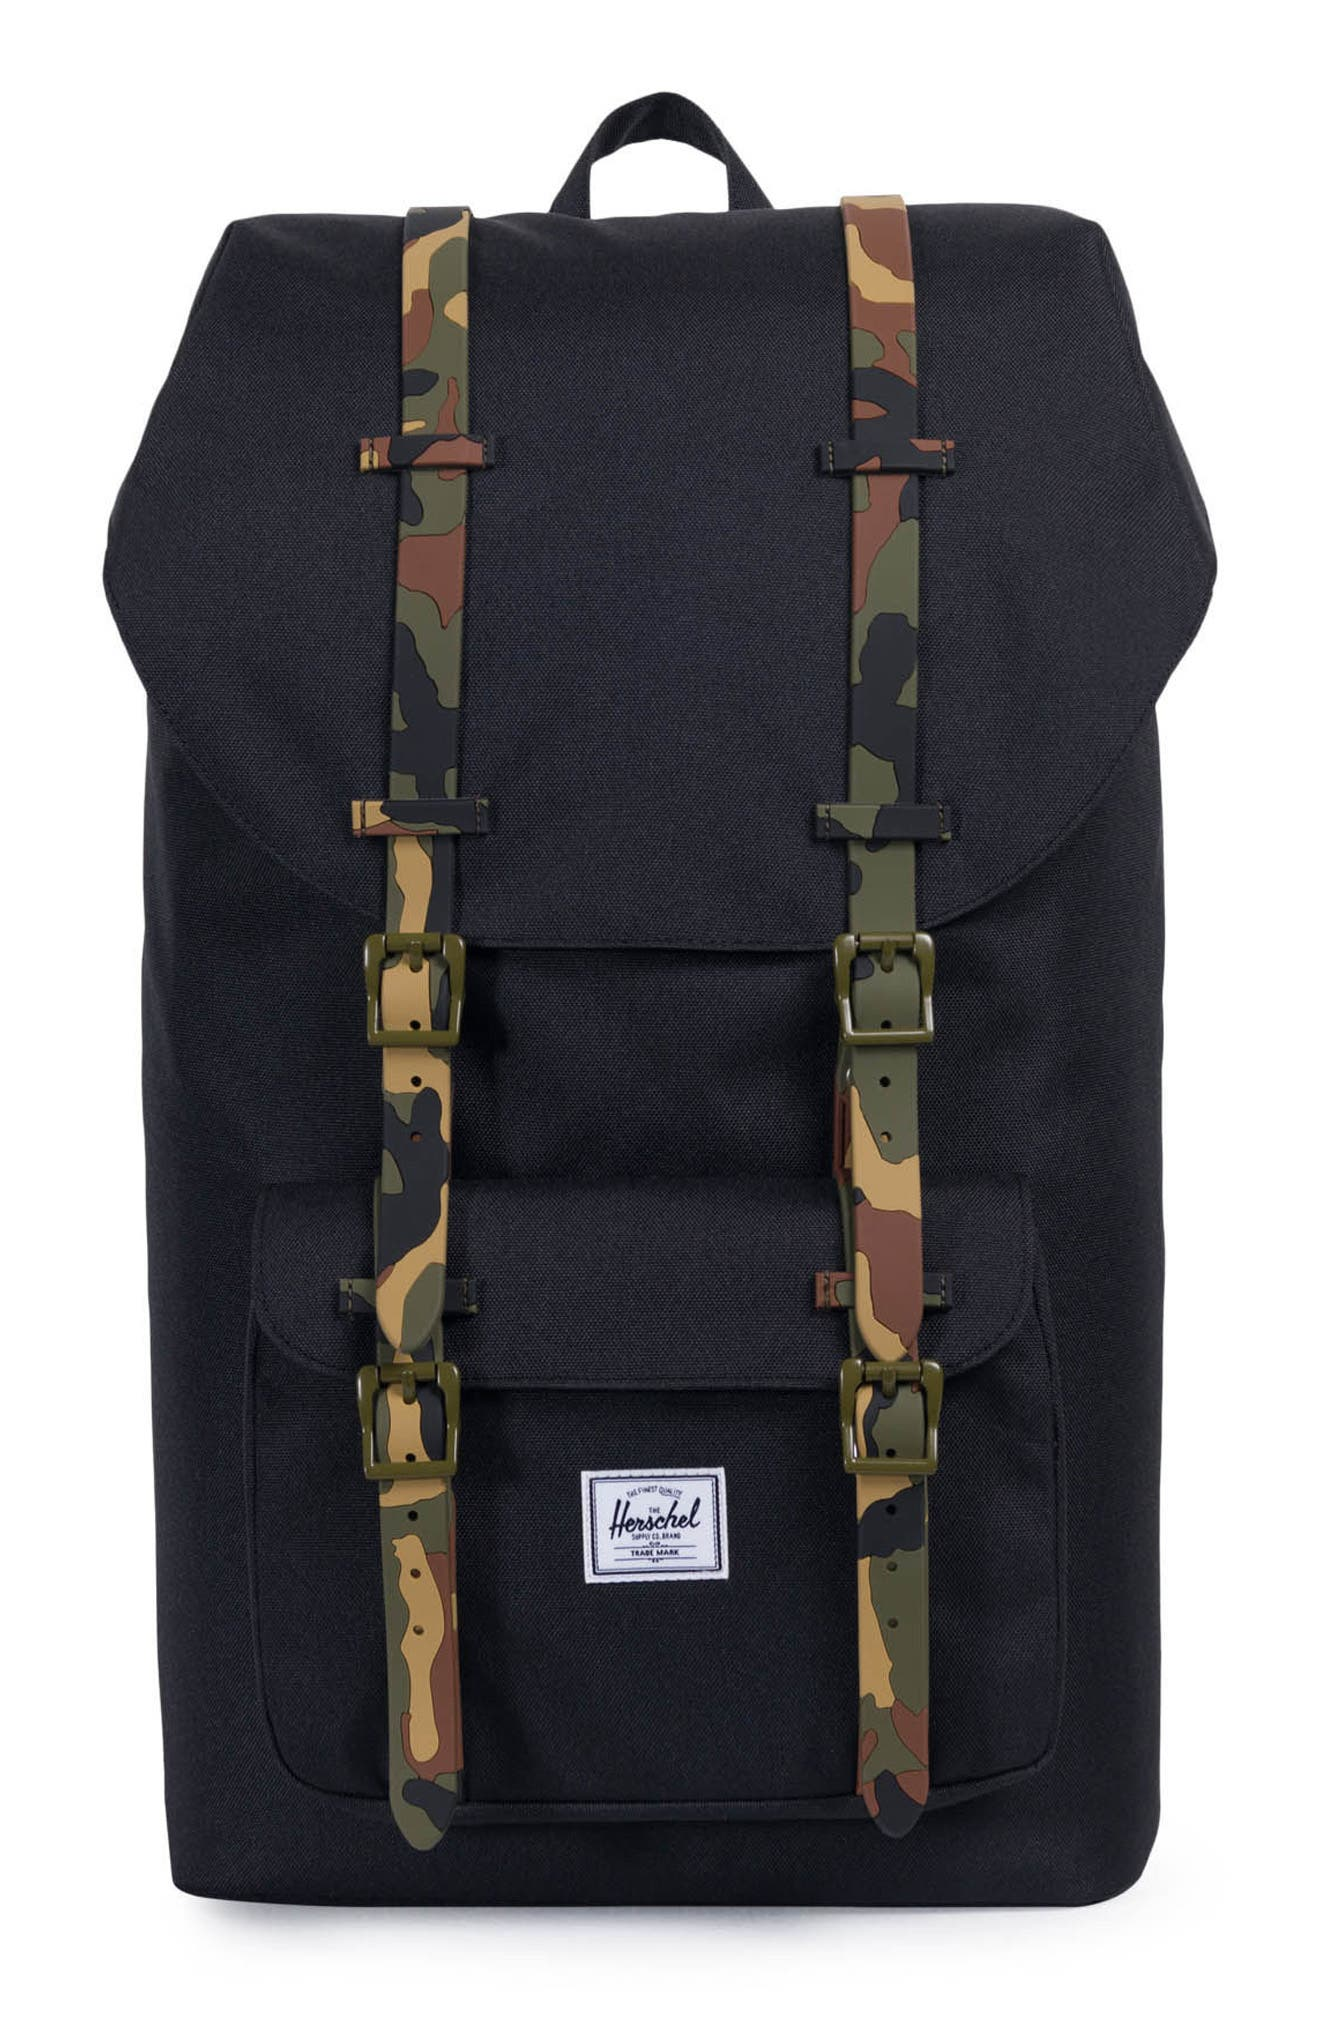 Little America Backpack,                             Main thumbnail 1, color,                             Black/ Woodland Camo Rubber